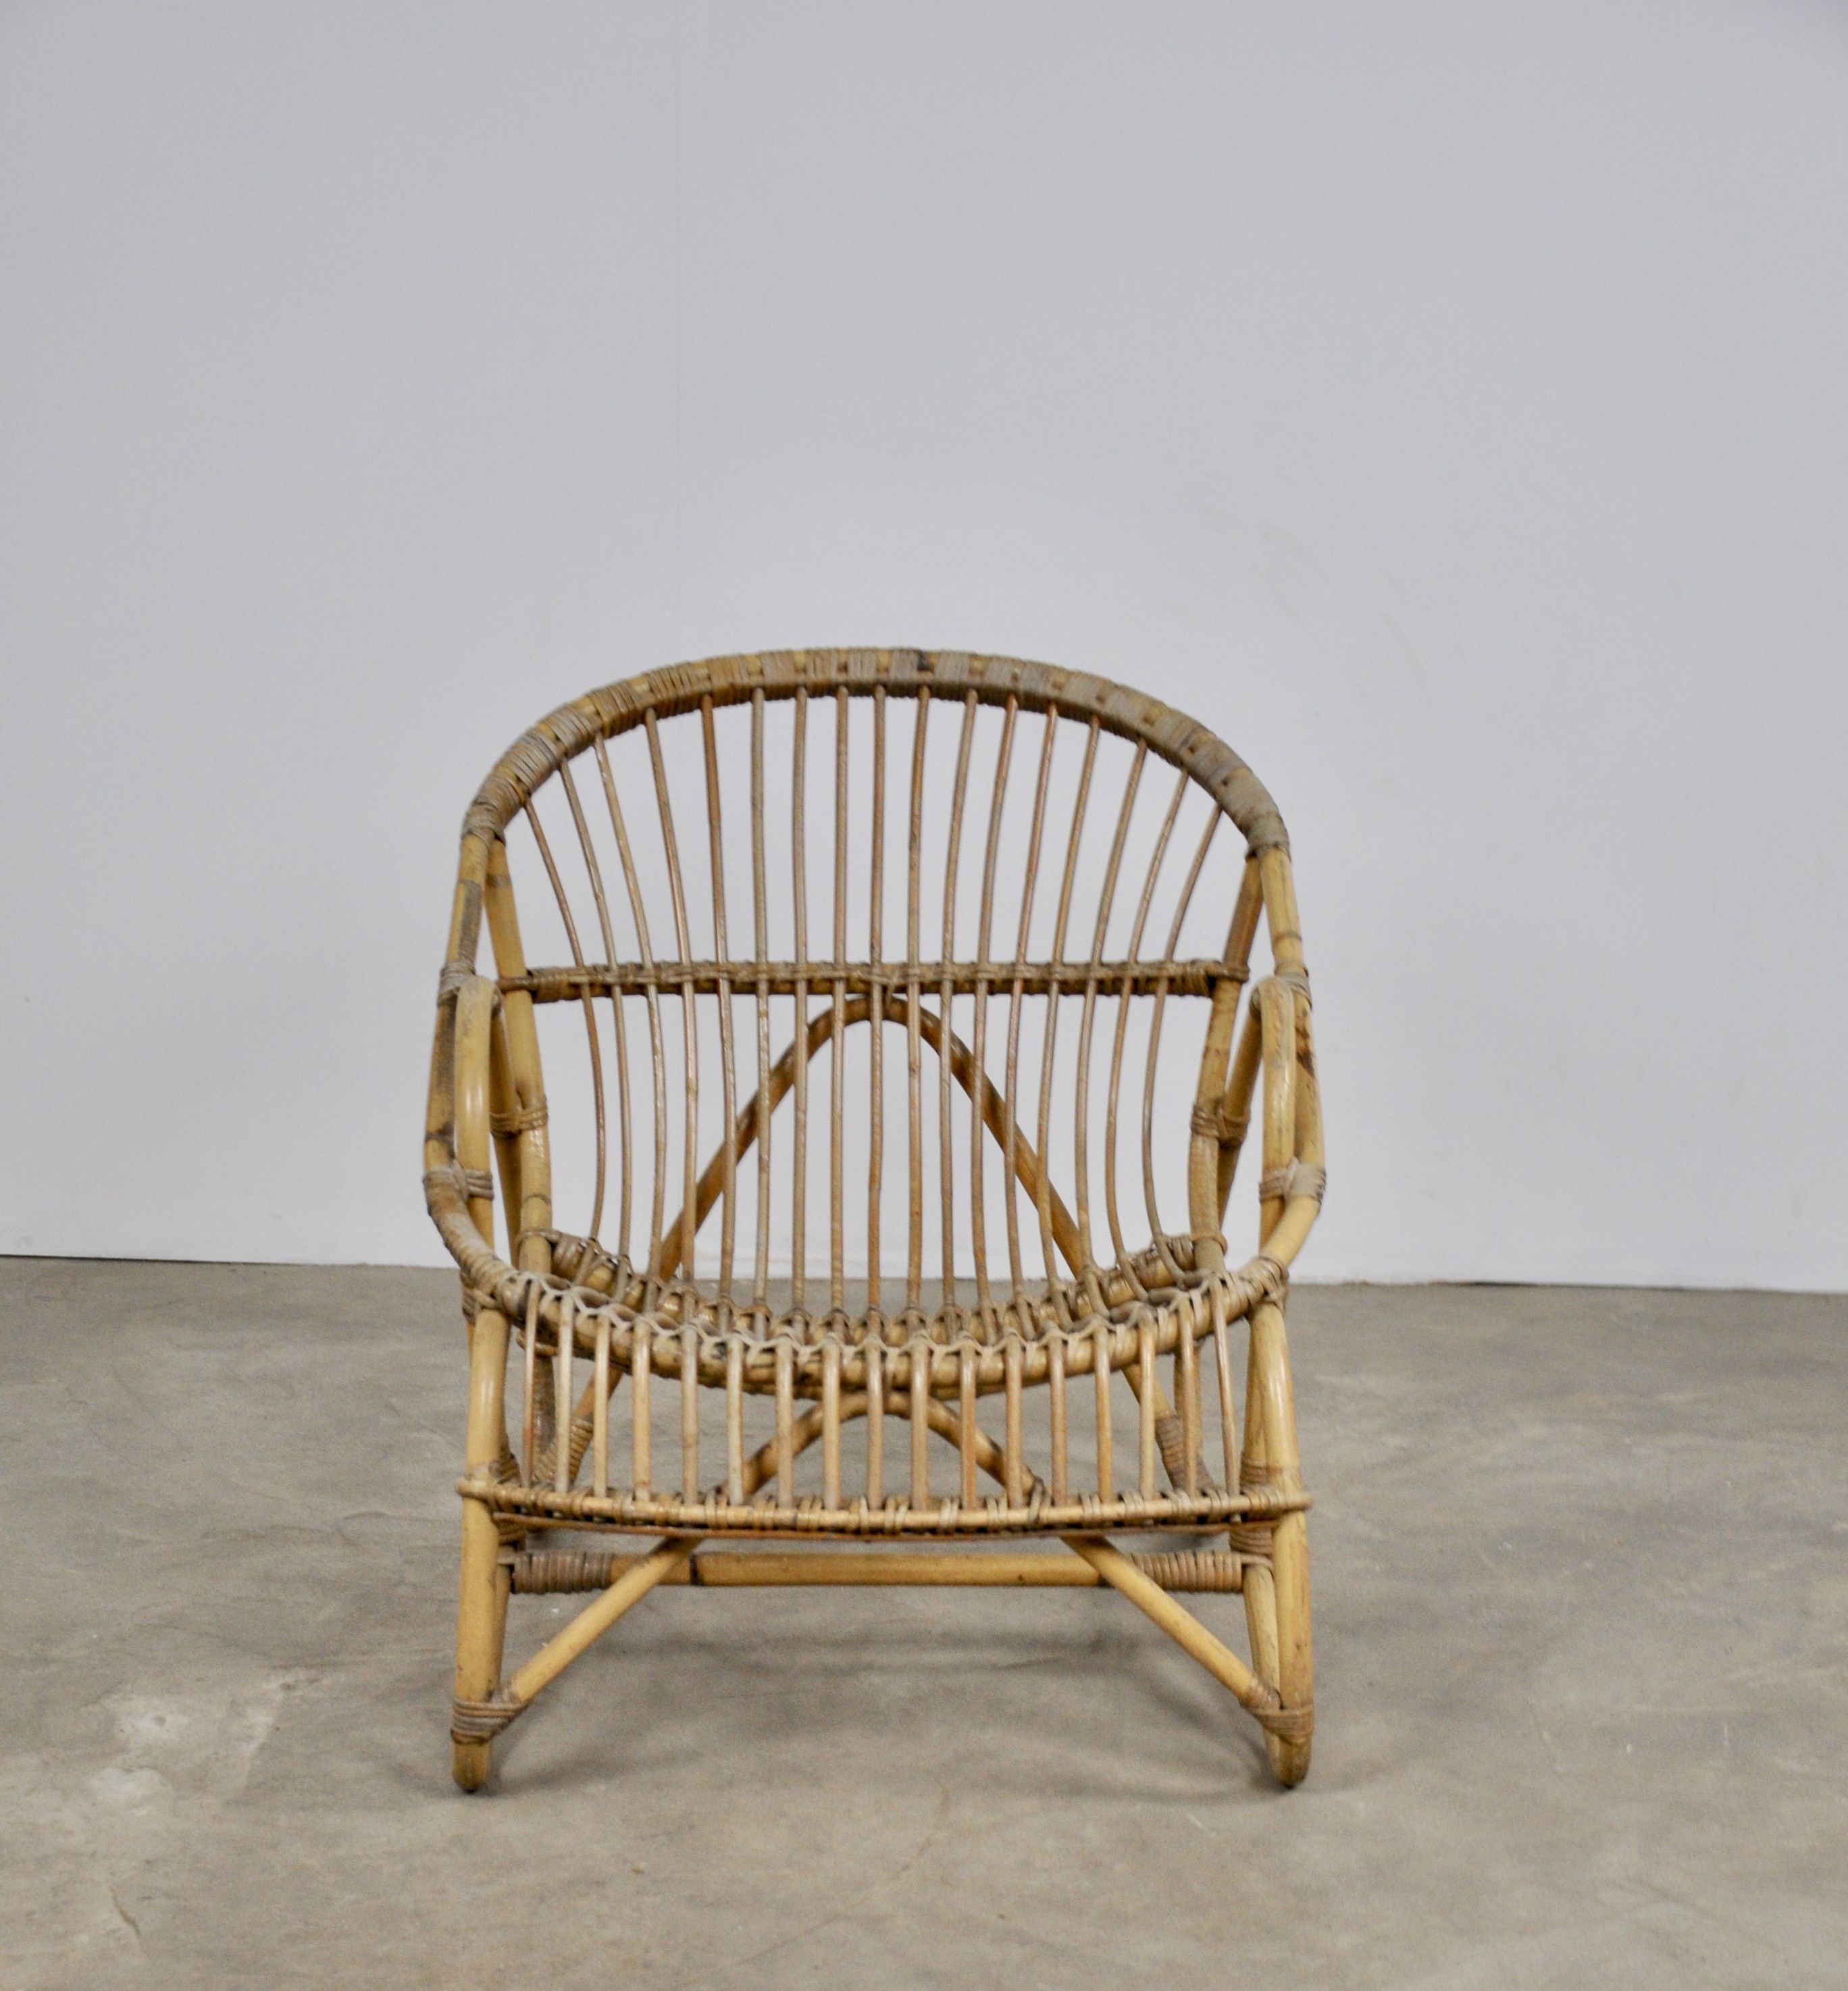 Vintage rattan armchair from the 60s - Design Market